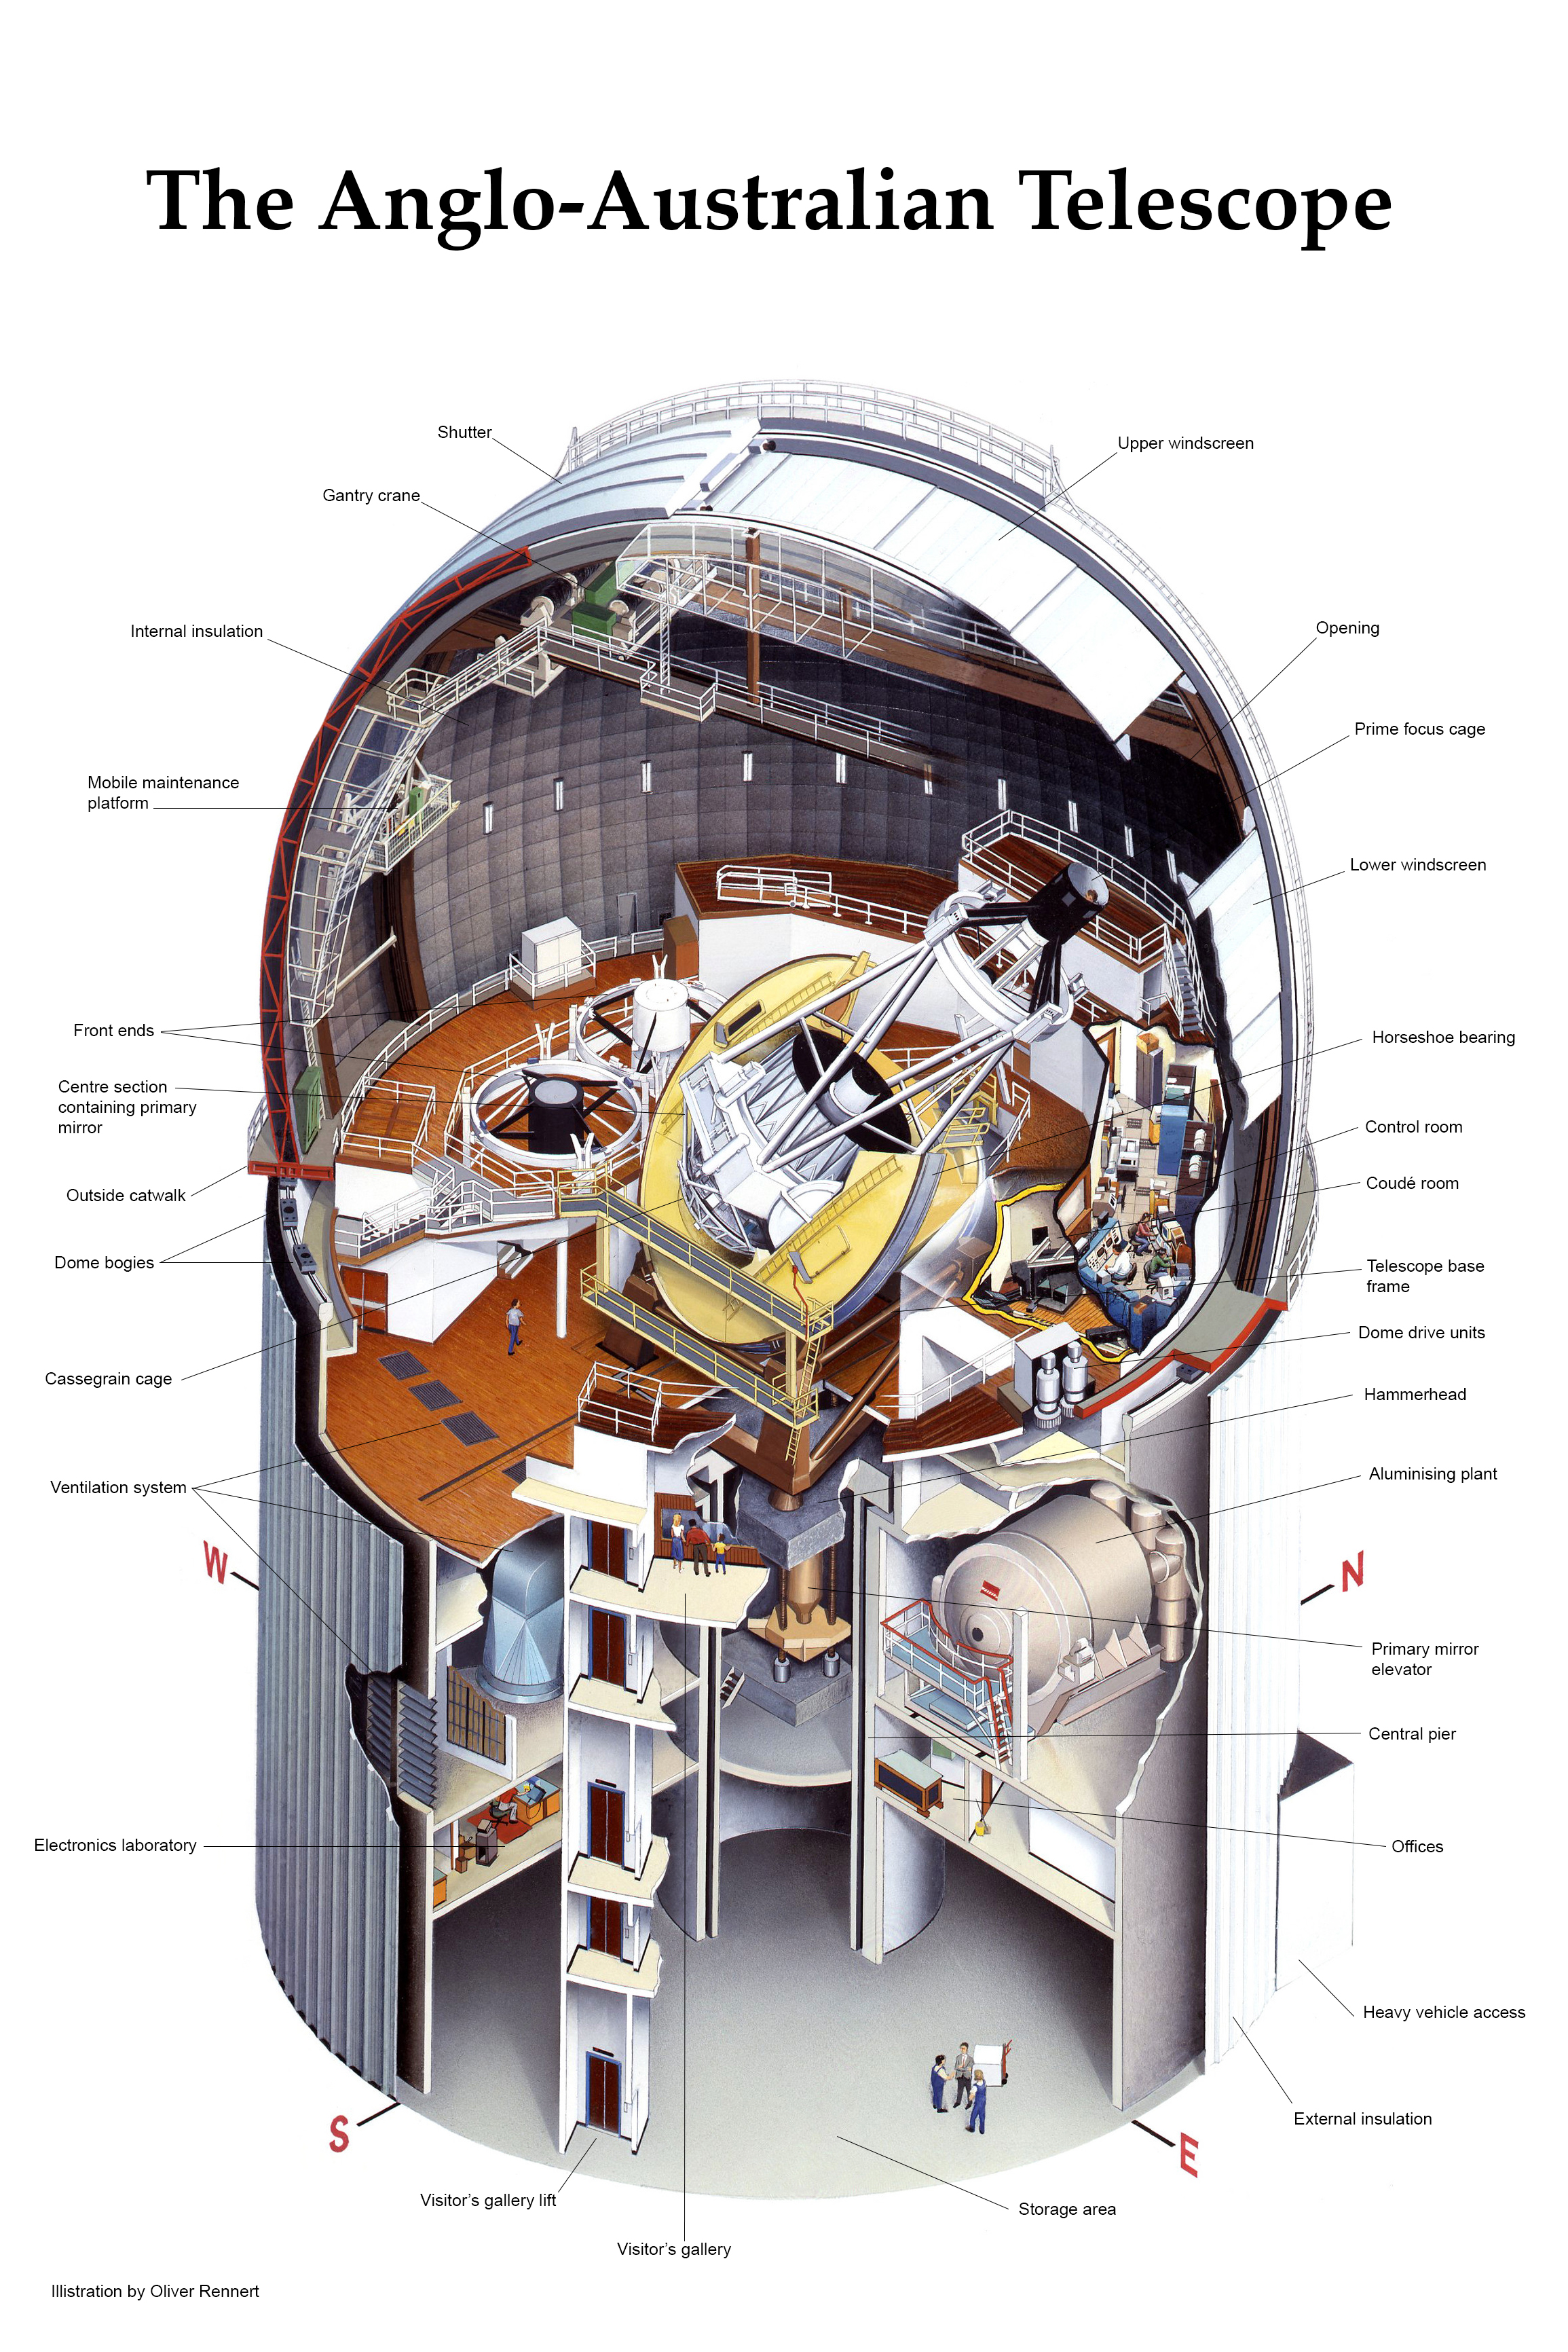 The Anglo-Australian Telescope Cross Section. Illustration by Oliver Rennert